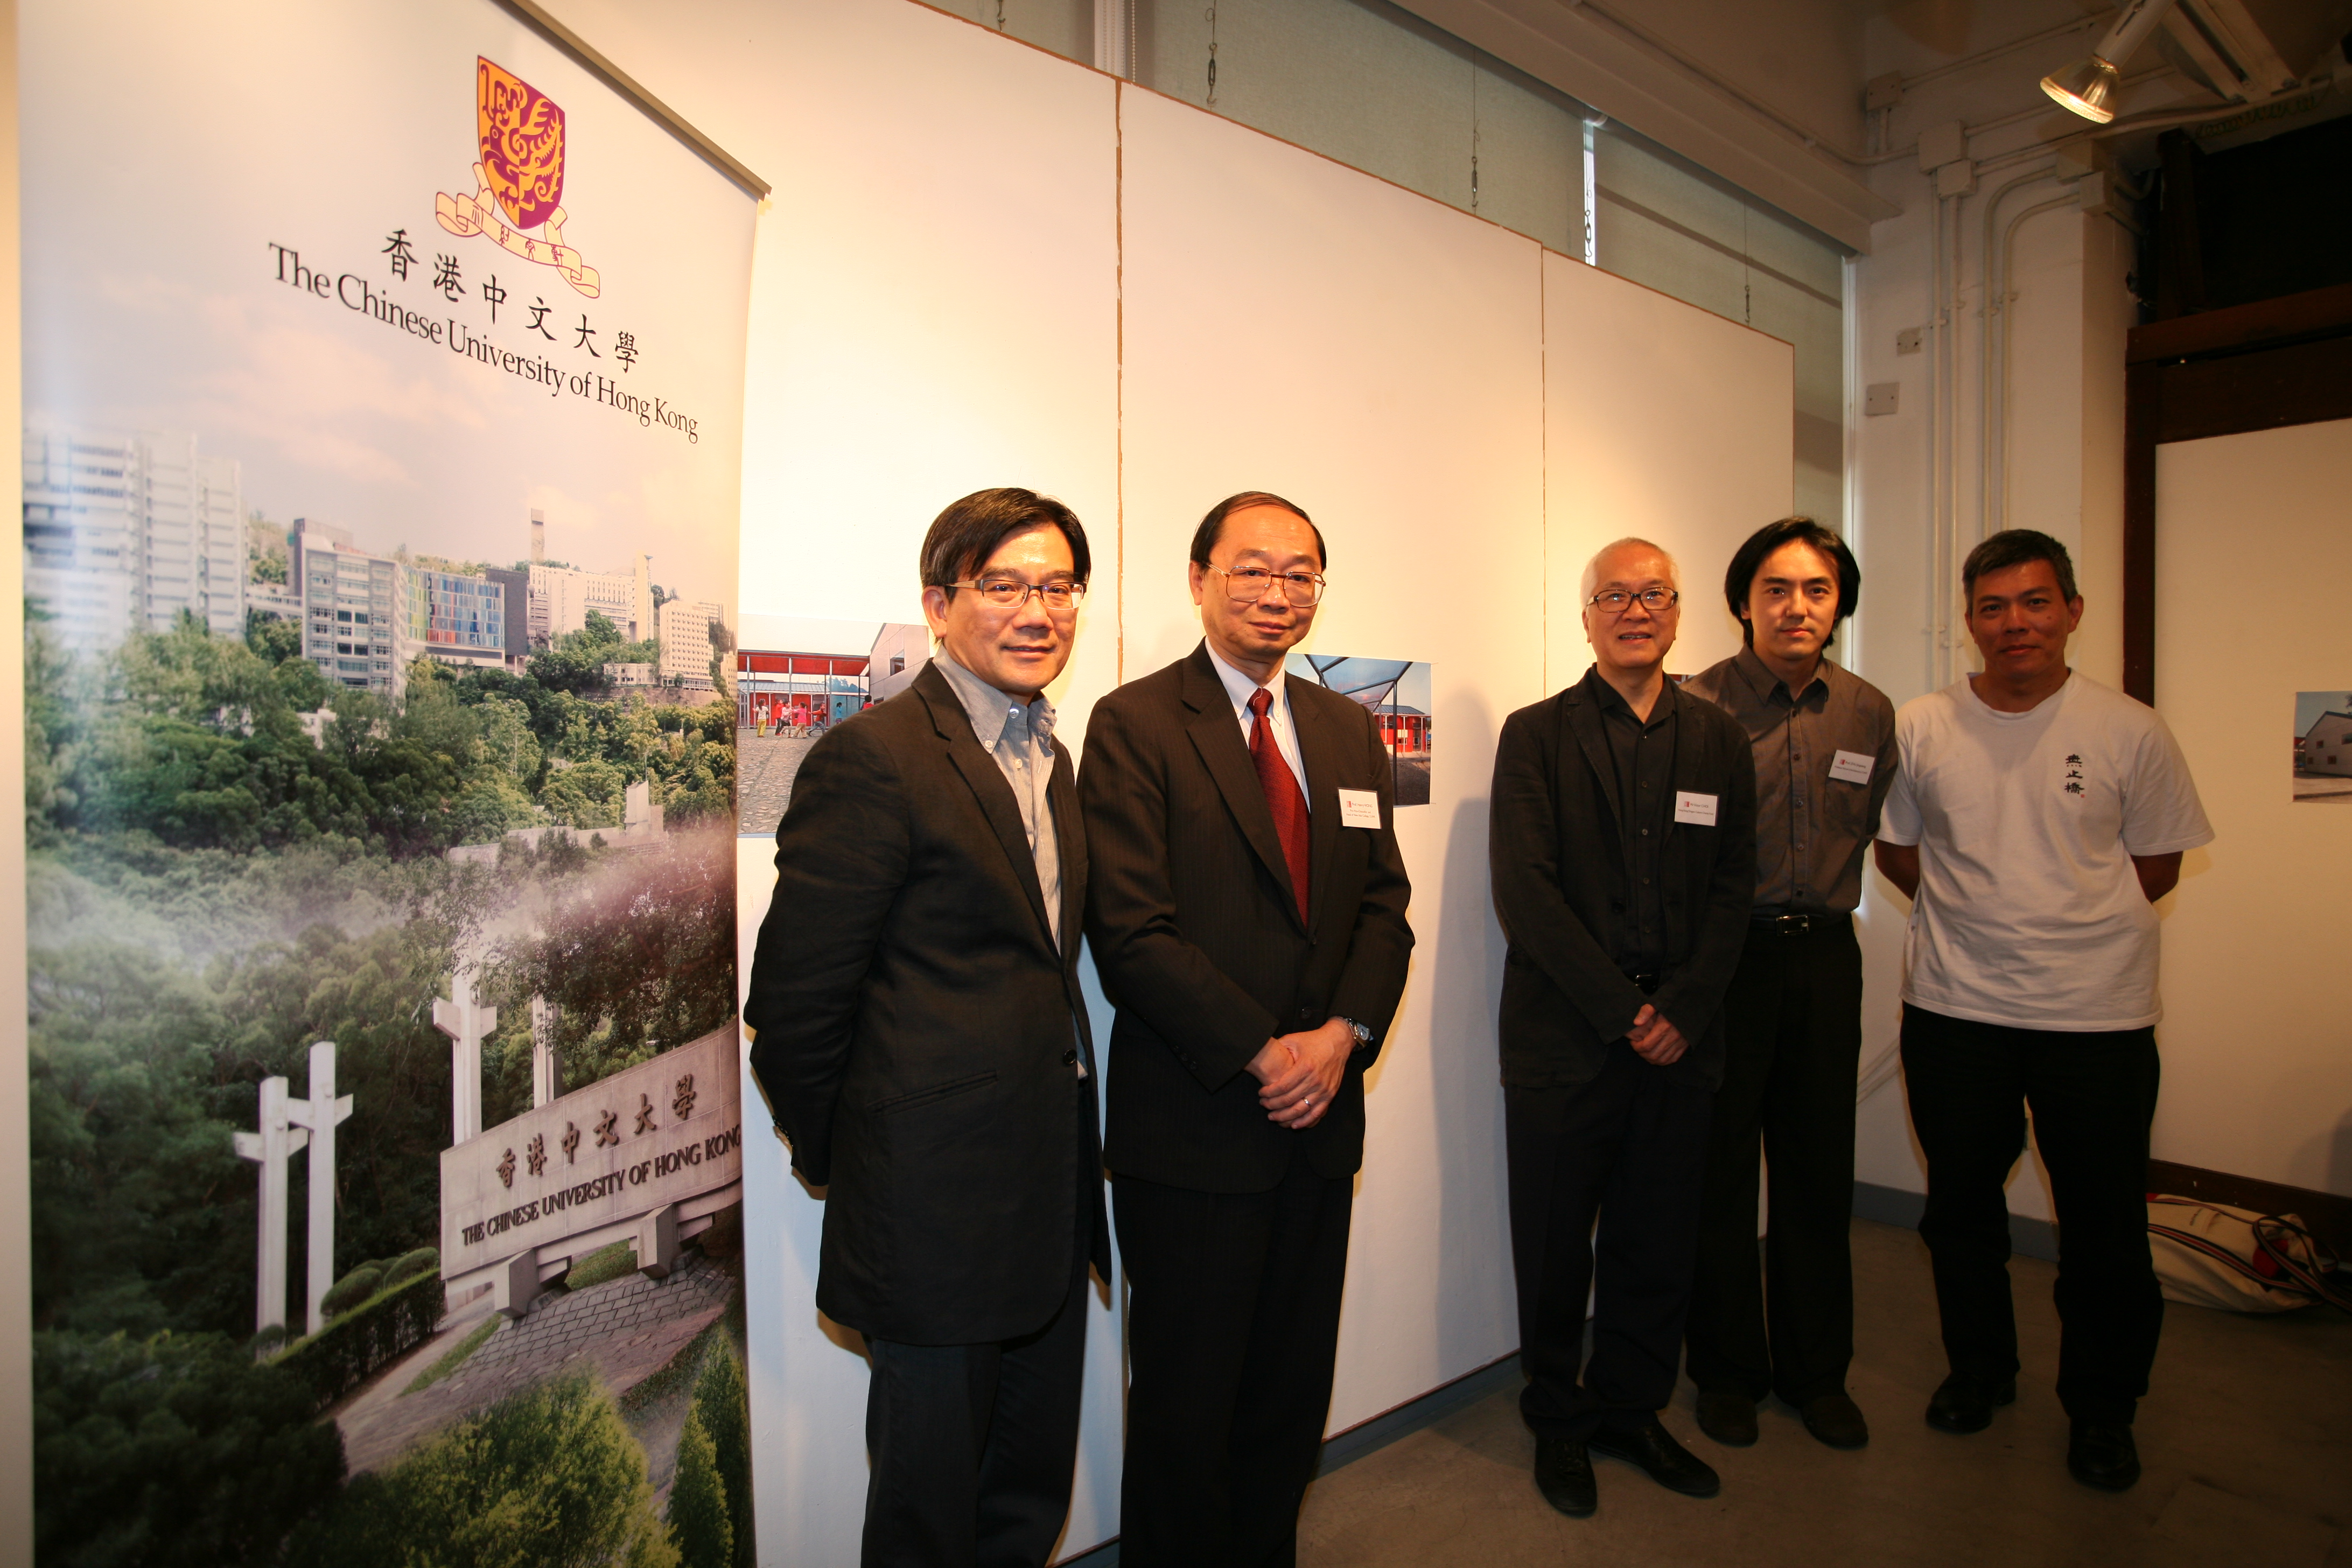 (From left)  Prof. HO Puay-peng, Director, School of Architecture, CUHK; Prof. Henry WONG Nai-ching, Pro-Vice-Chancellor and Head of New Asia College, CUHK; Mr. Victor CHOI, Hong Kong Dragon Culture Charity Fund; Prof. ZHU Jingxiang, Assistant Professor, School of Architecture, CUHK; and Prof. Edward NG Yan-yung, Co-investigator of New Bud Primary School Project, and Professor, School of Architecture, CUHK